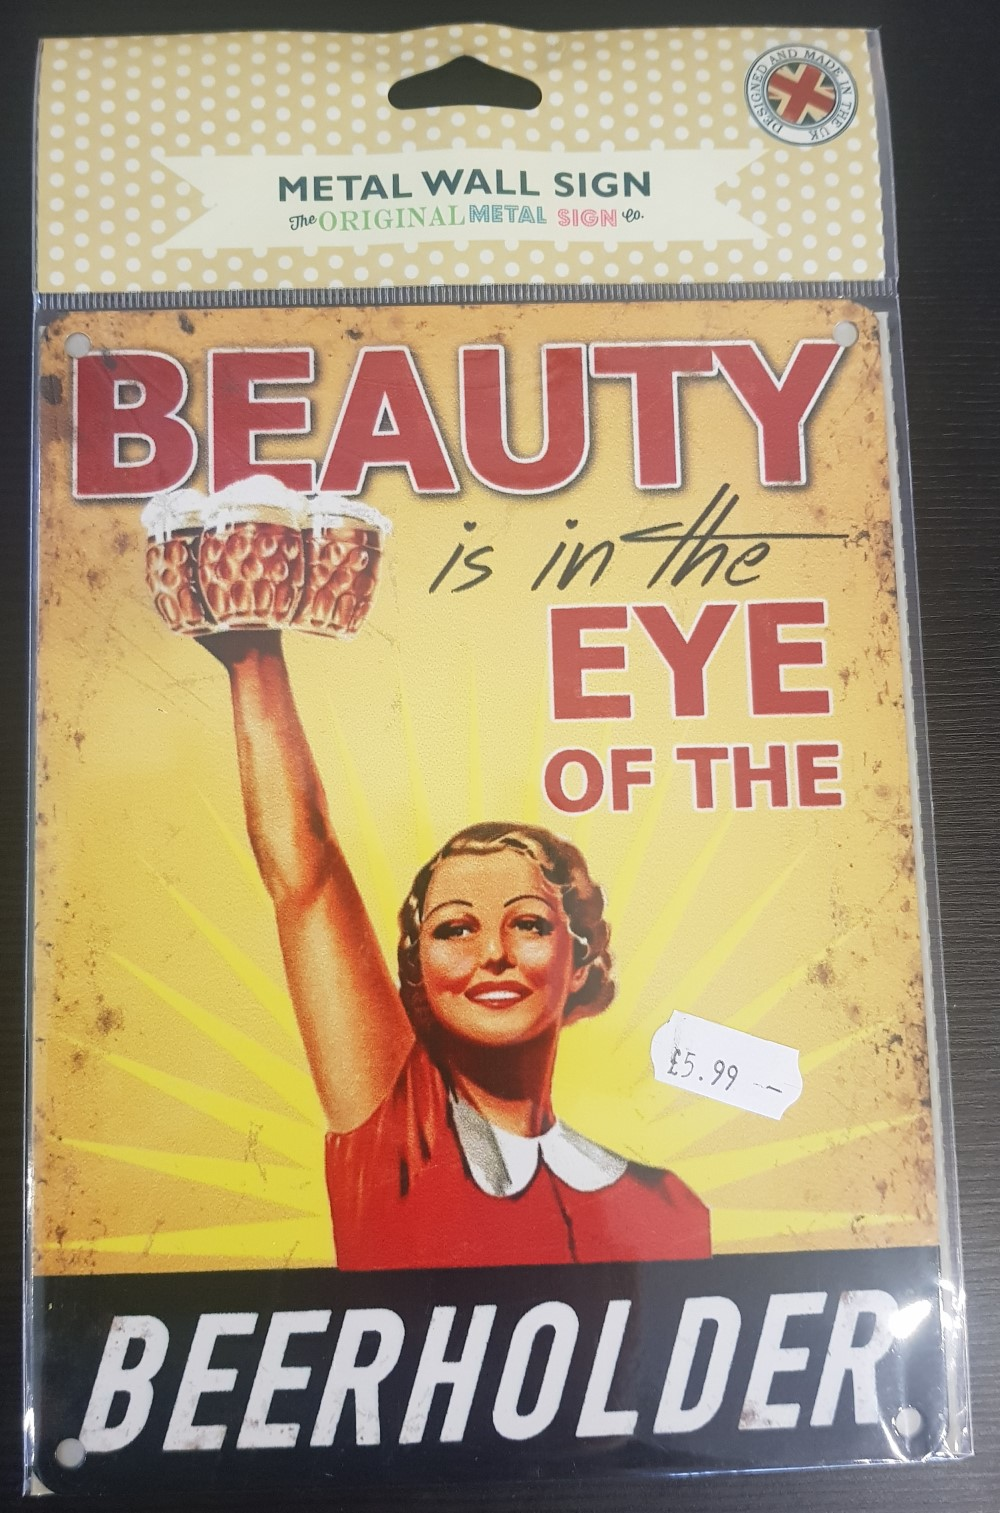 Metal Wall Sign 'Beauty is in the eyes of the Beerholder'